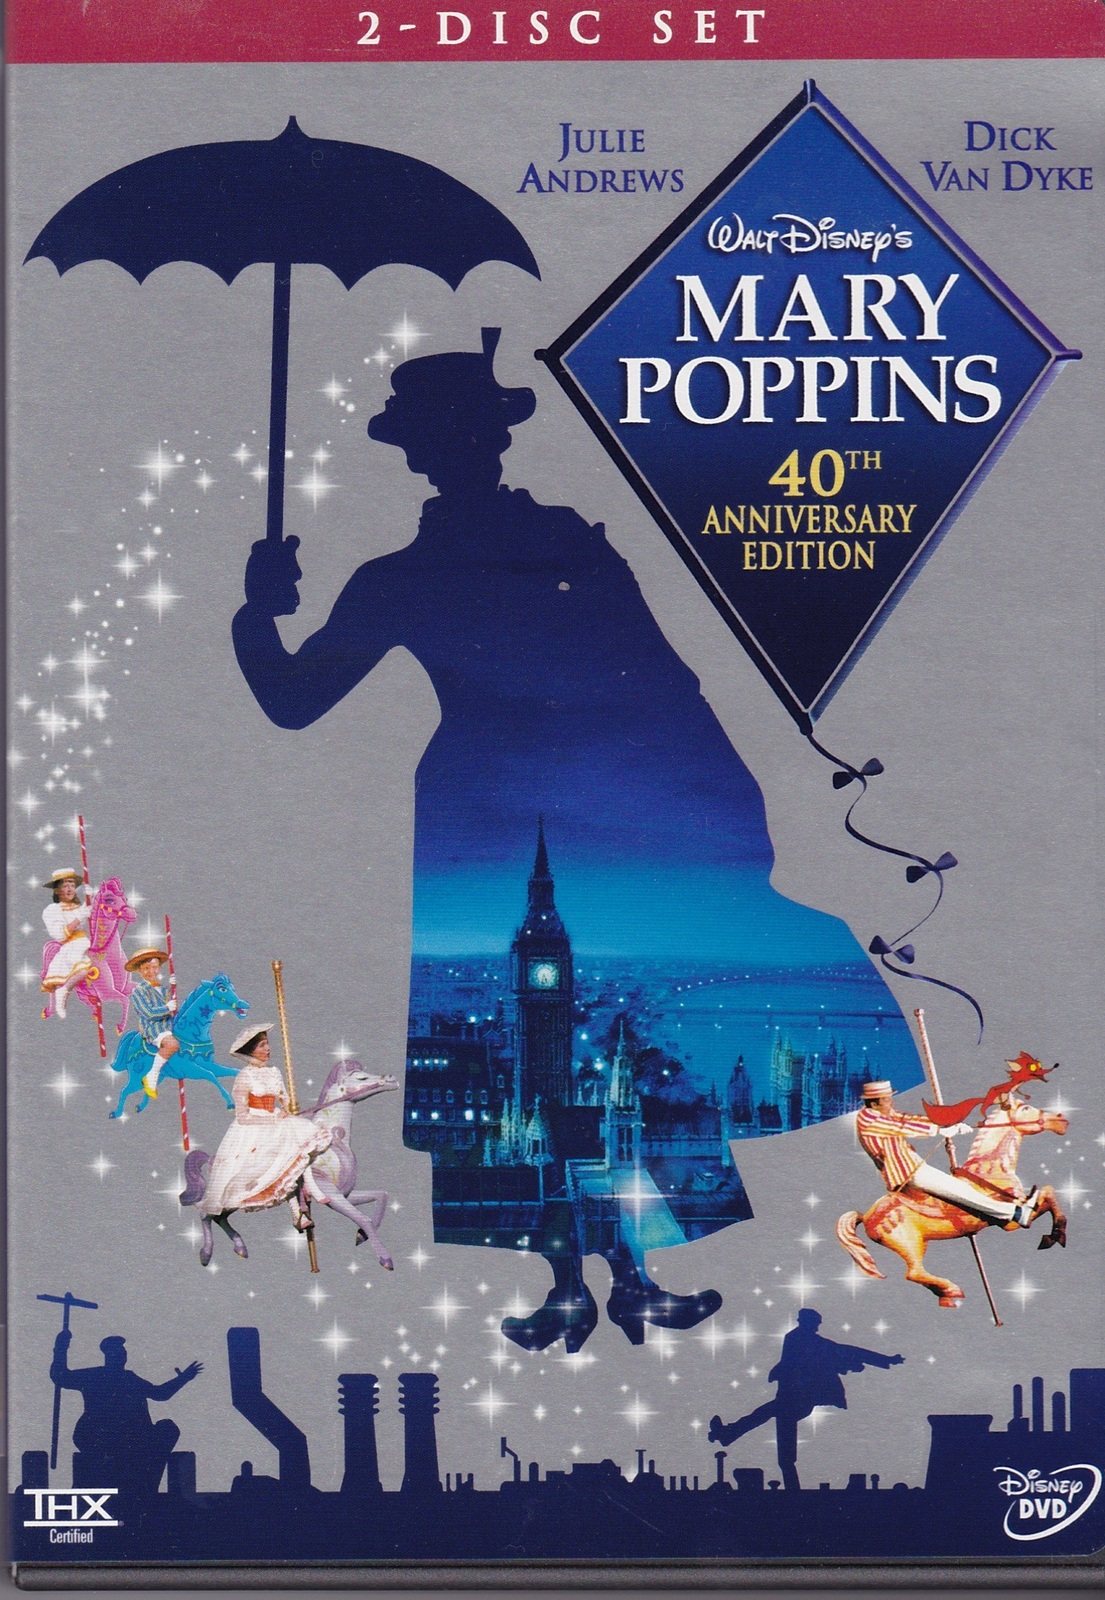 Mary poppins coupon code ticketmaster